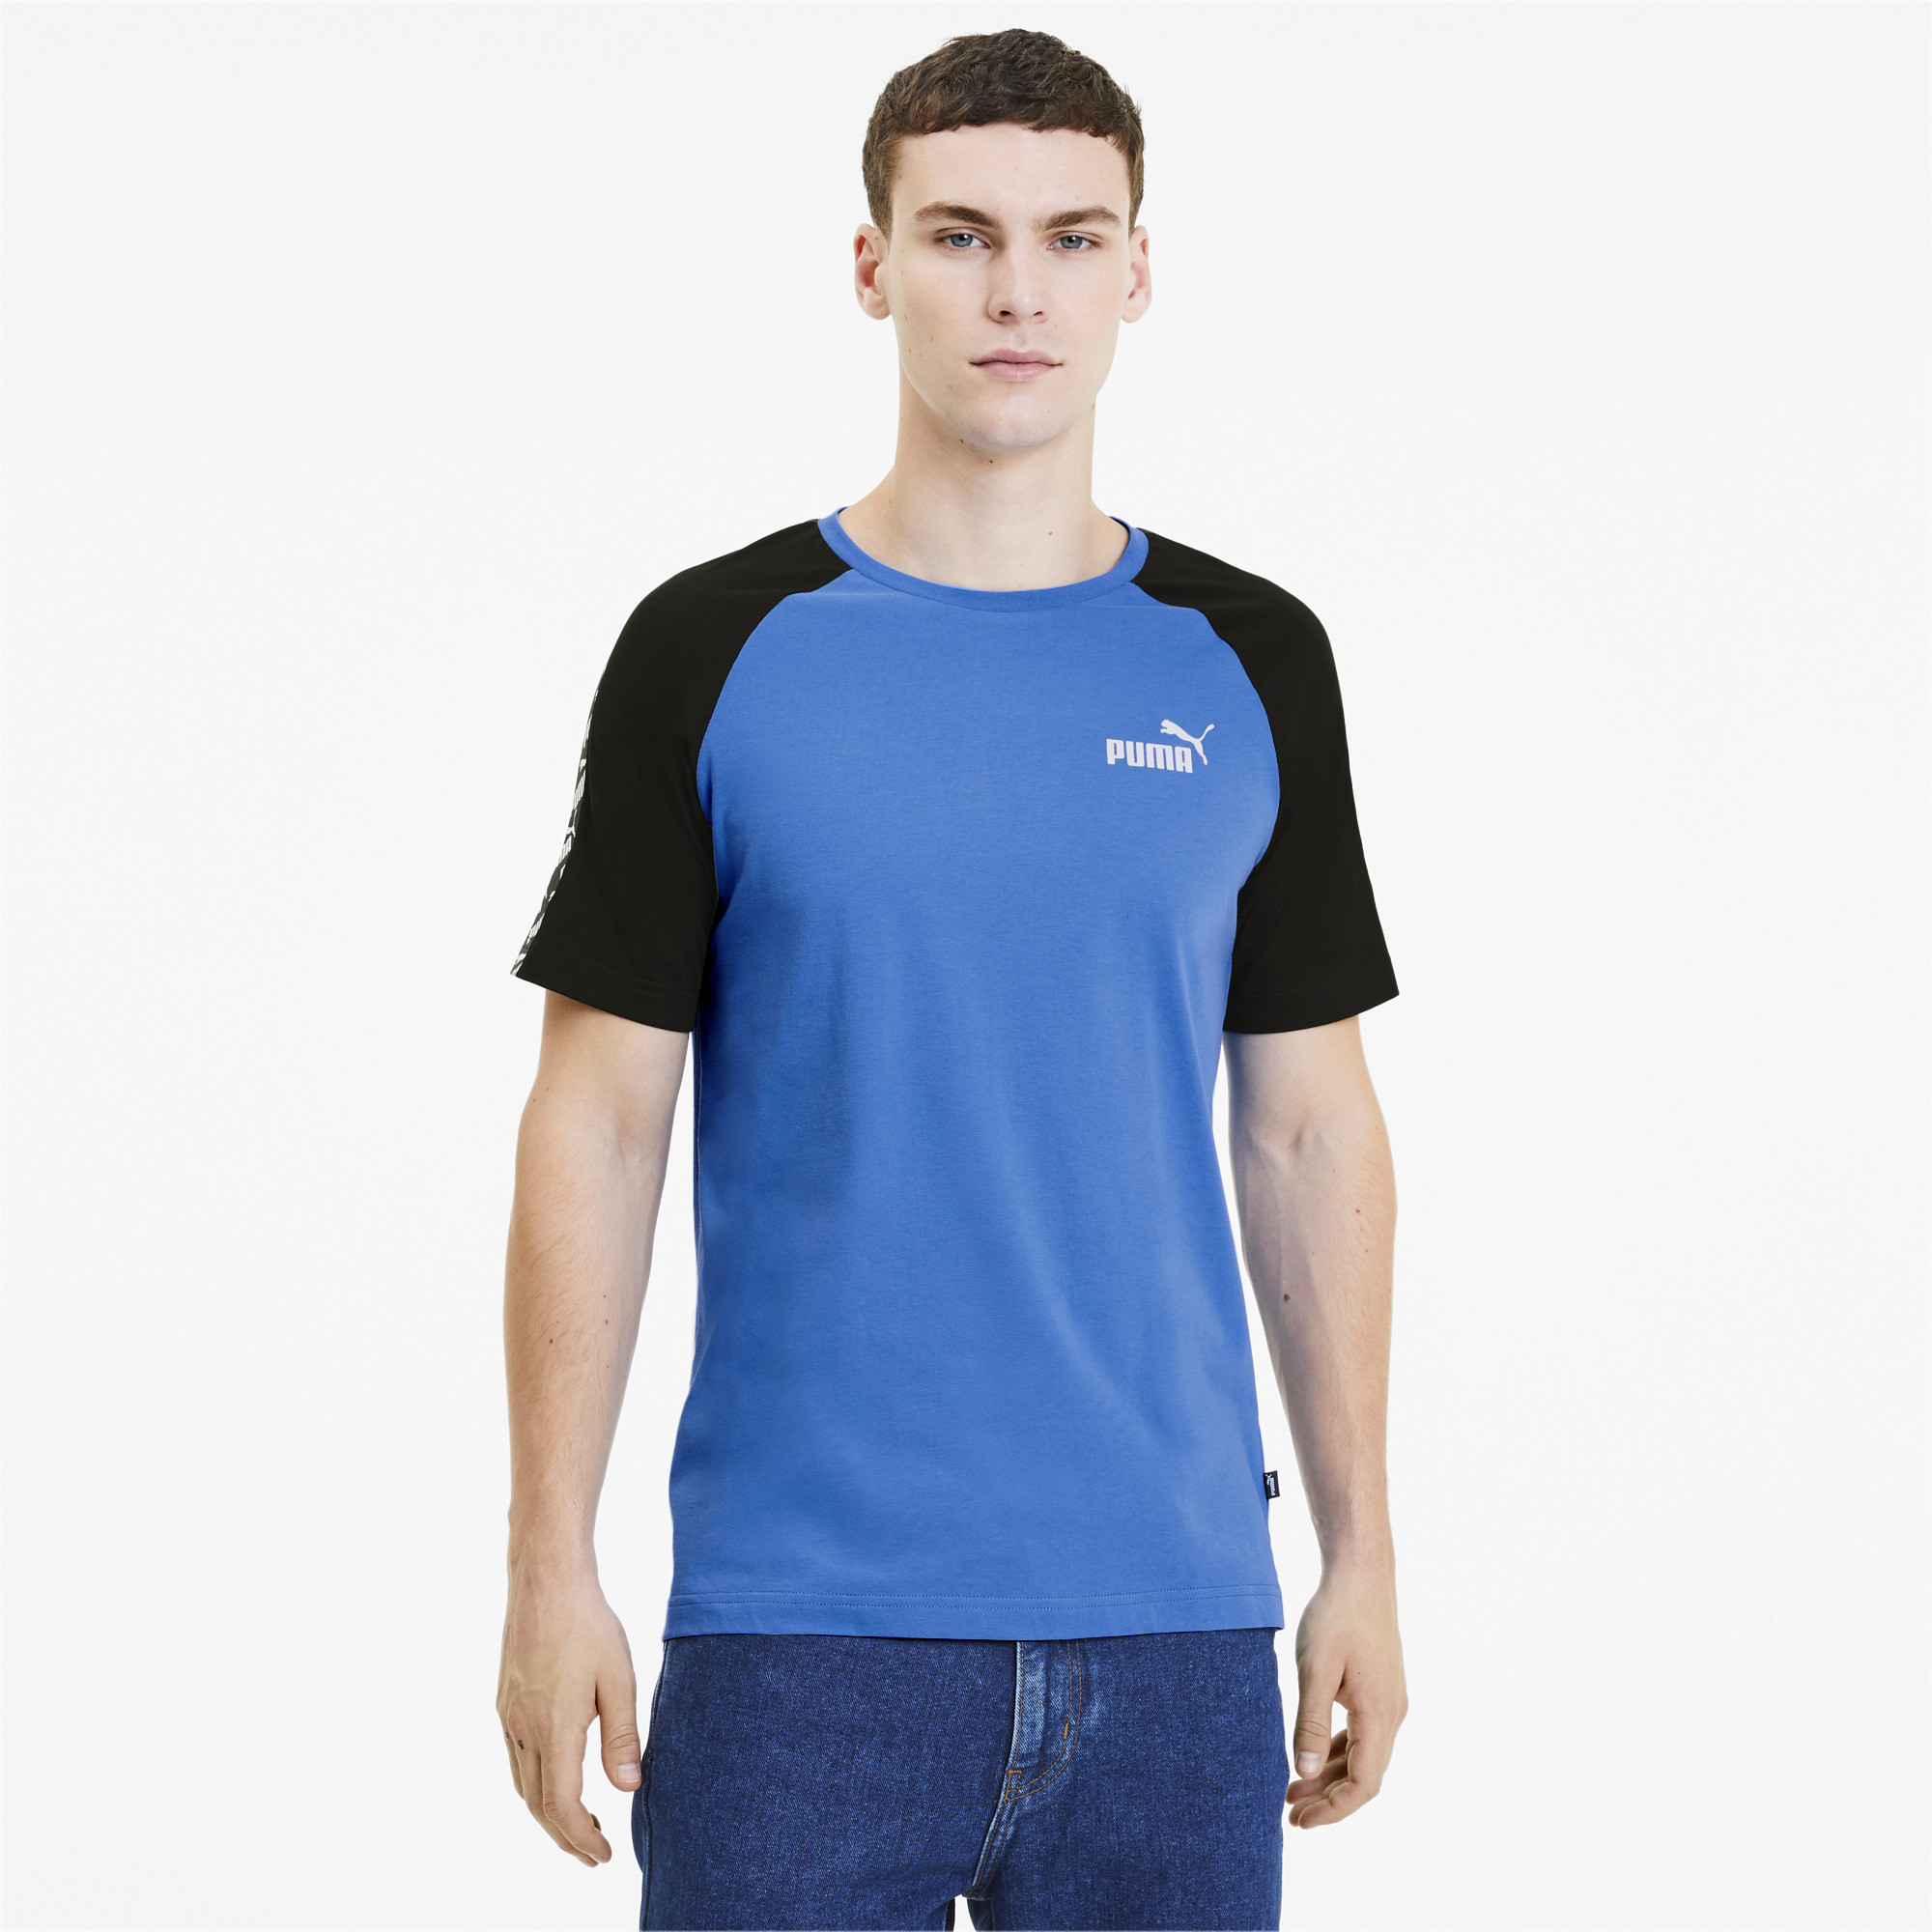 PUMA-Amplified-Men-039-s-Raglan-Tee-Men-Tee-Basics thumbnail 20